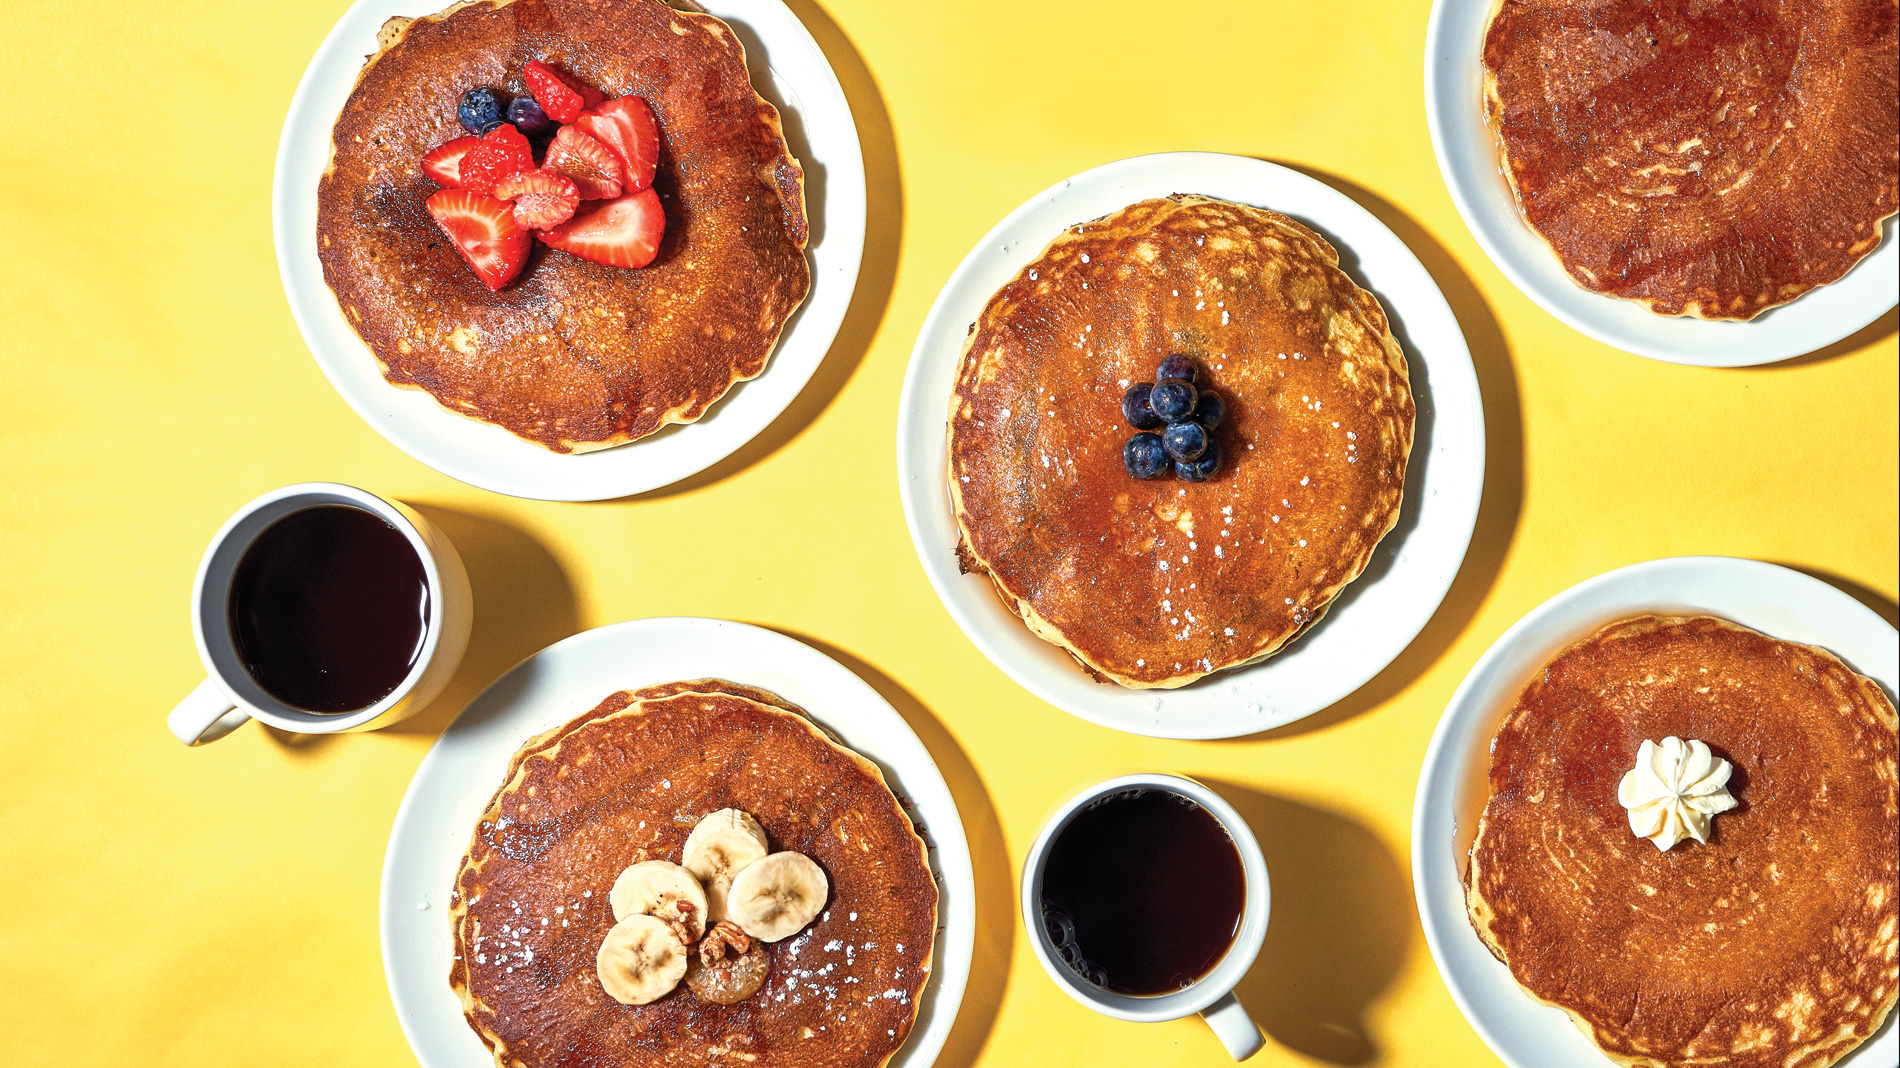 stacks of pancakes and cups of coffee on a yellow background